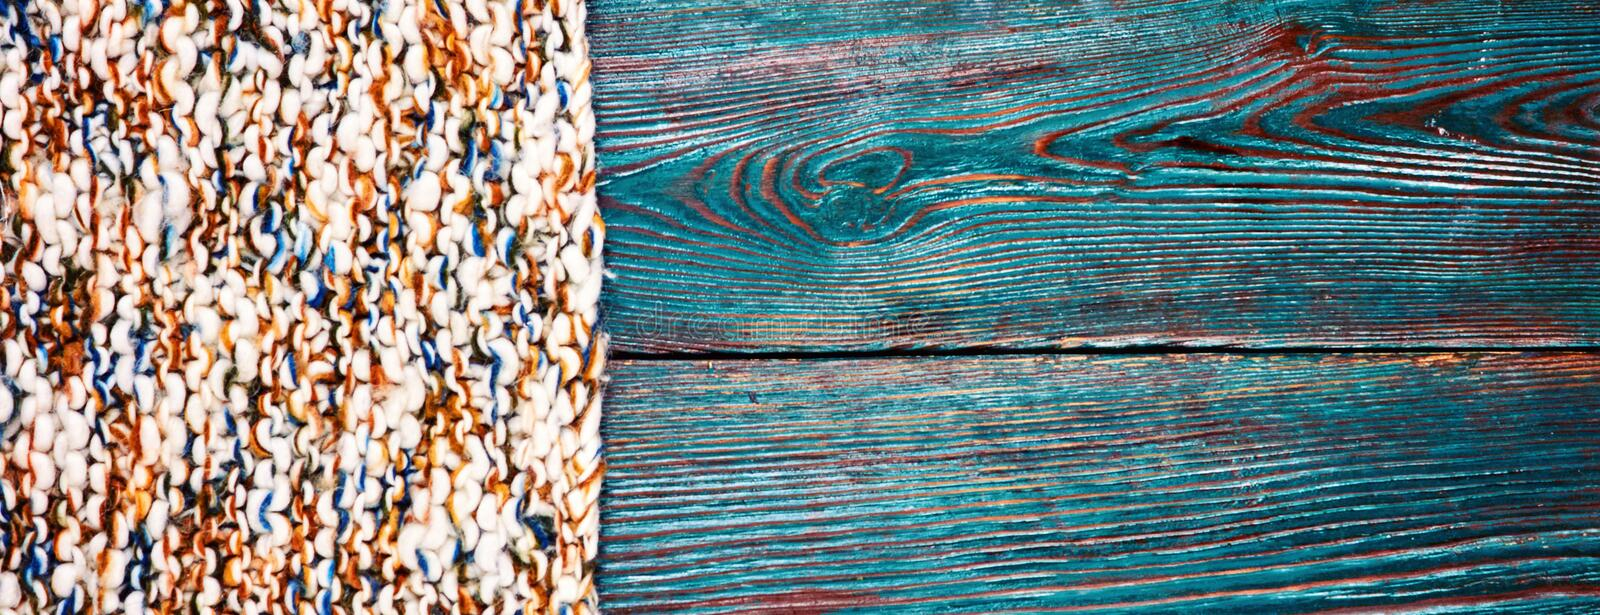 Knitted product carpet plaid close up of fiber of thread texture wool wooden background board floor brown green royalty free stock image